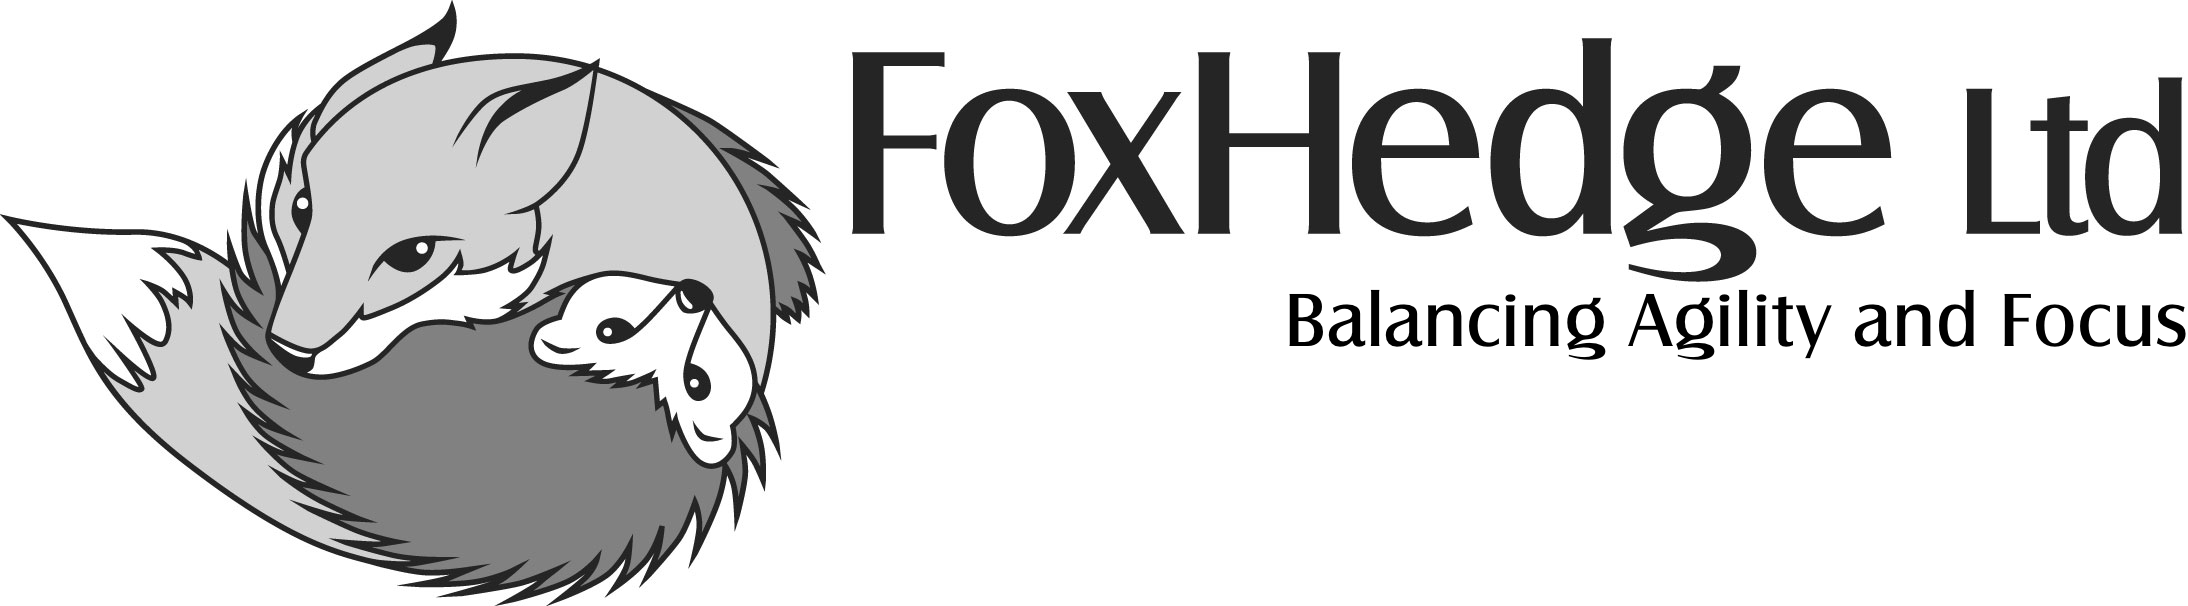 FoxHedge Ltd. logo